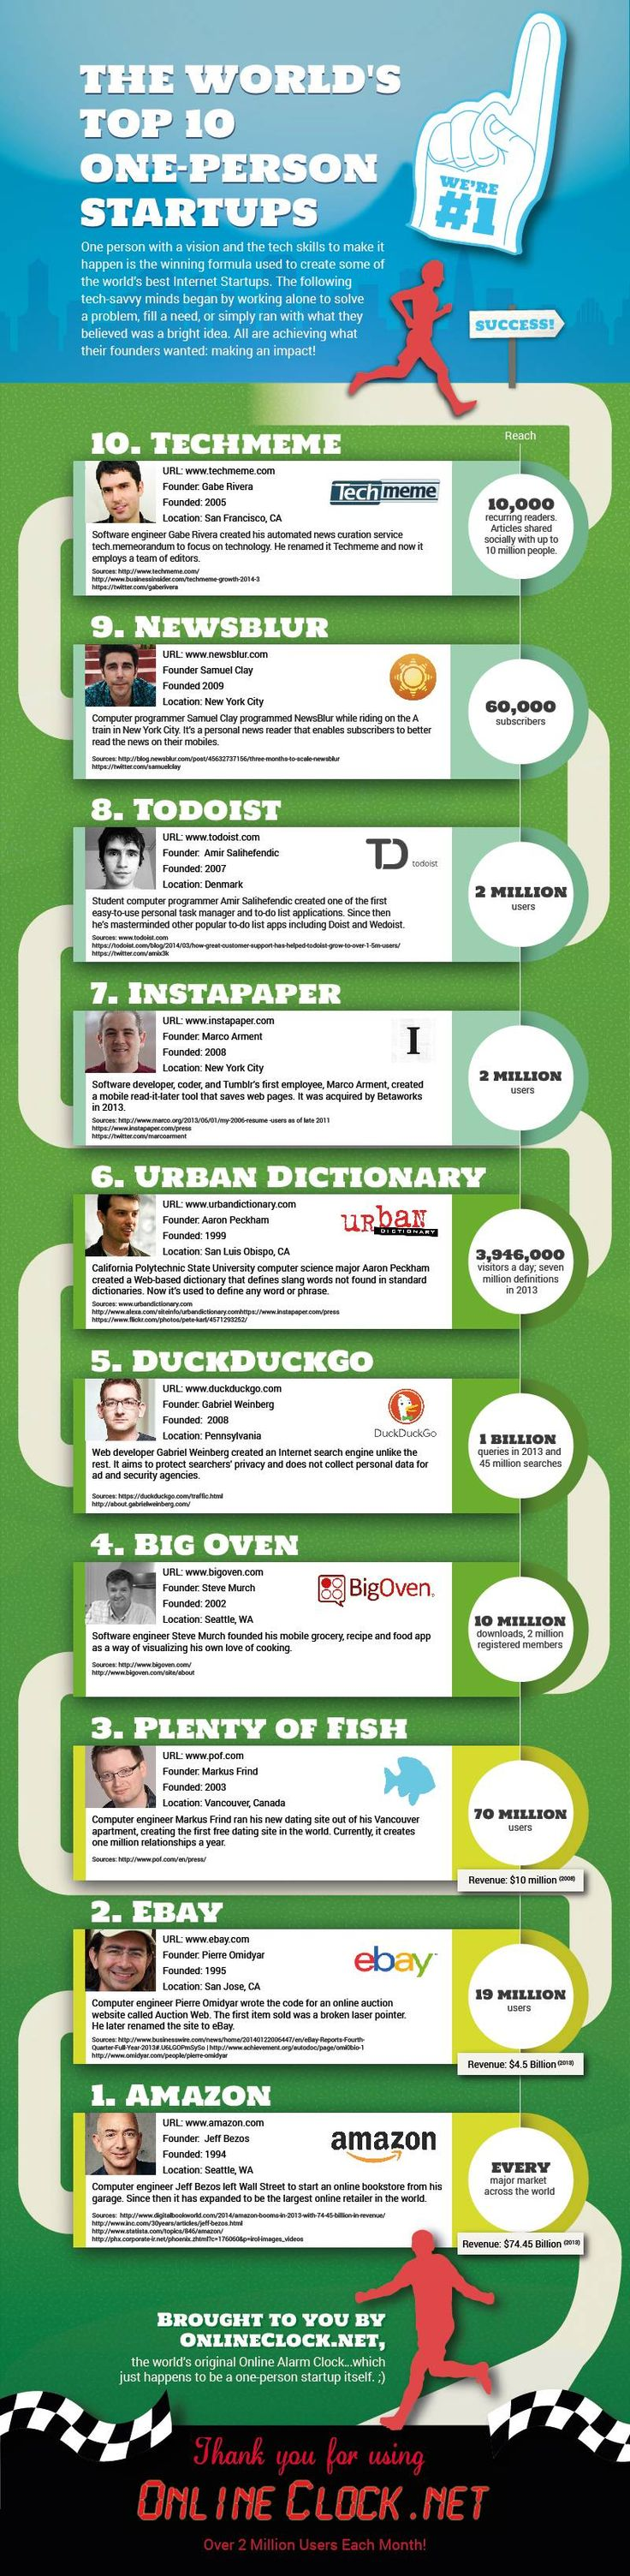 The World's Top 10 One-Person Startups #infographic #Startup #Entrepreneur